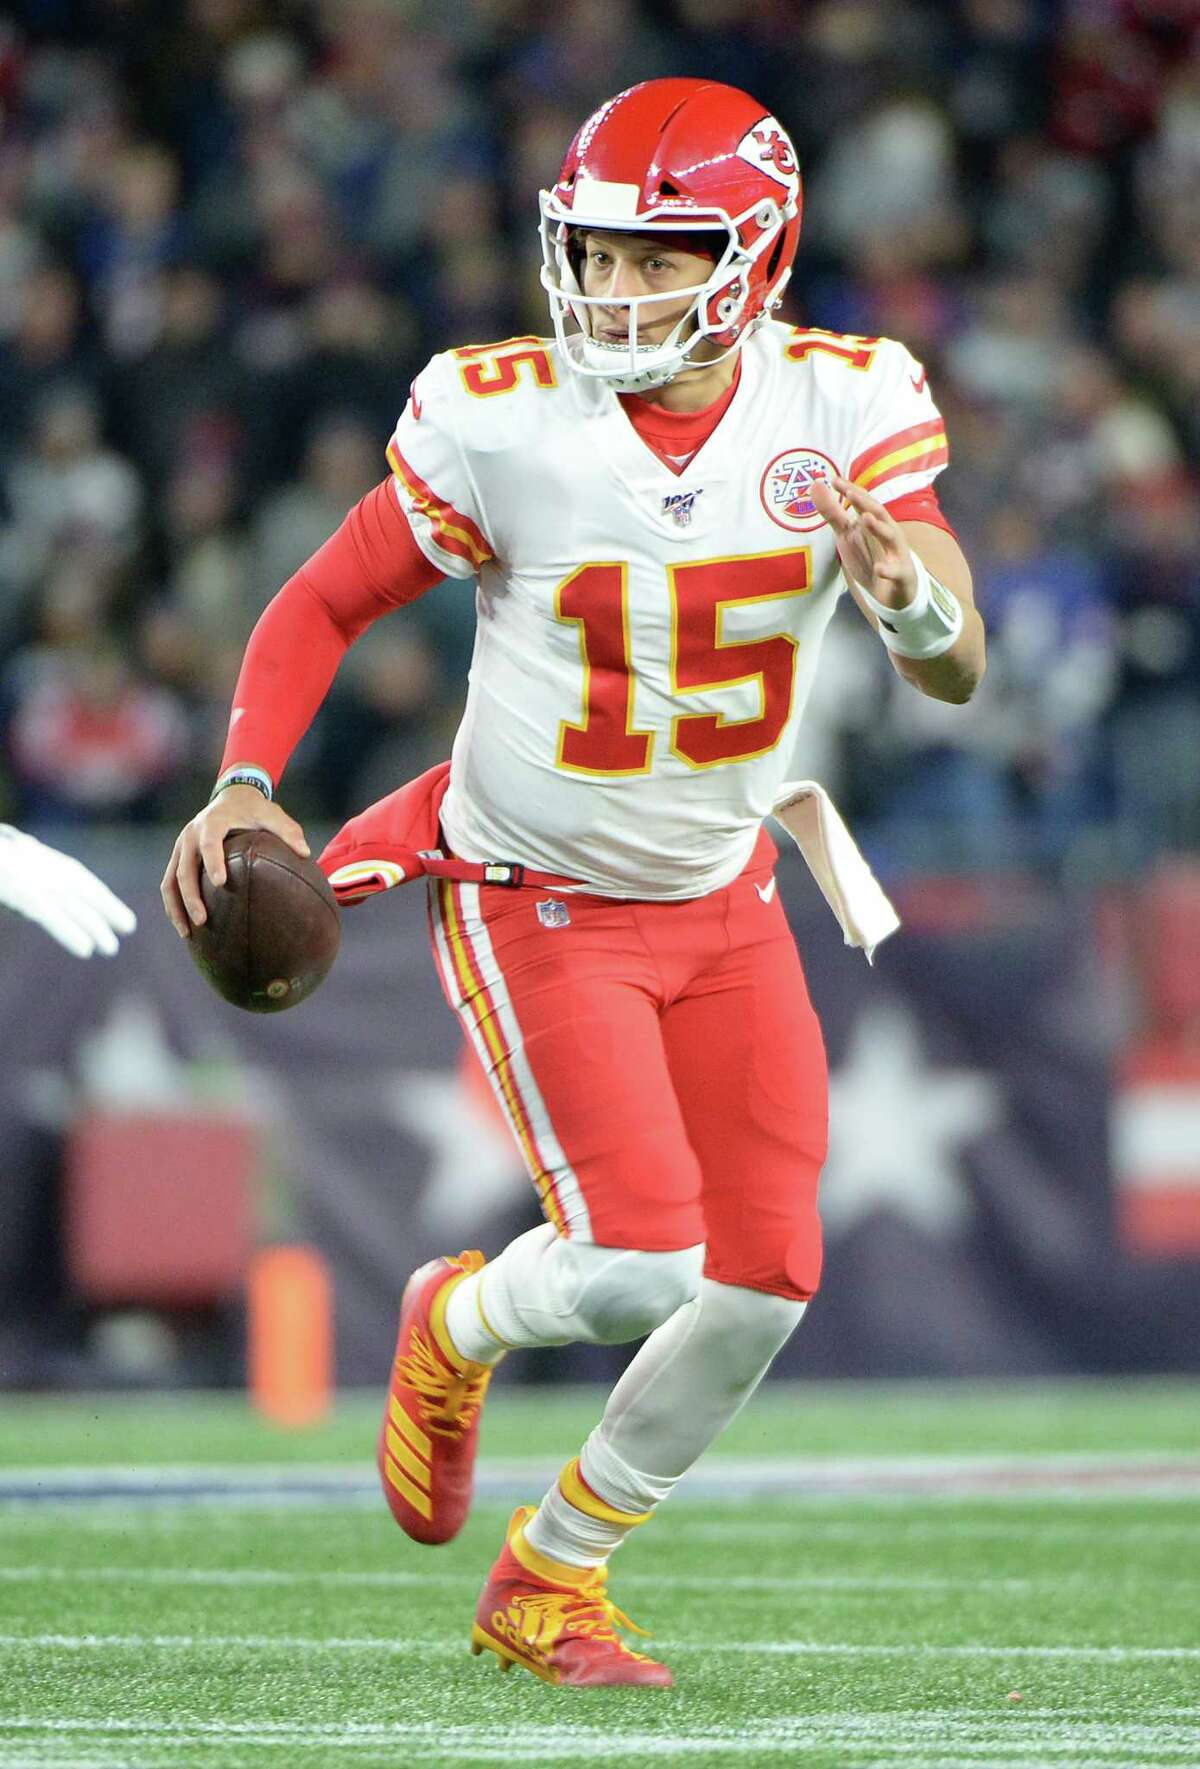 FOXBOROUGH, MASSACHUSETTS - DECEMBER 08: Patrick Mahomes #15 of the Kansas City Chiefs scrambles during the first half against the New England Patriots in the game at Gillette Stadium on December 08, 2019 in Foxborough, Massachusetts. (Photo by Kathryn Riley/Getty Images)